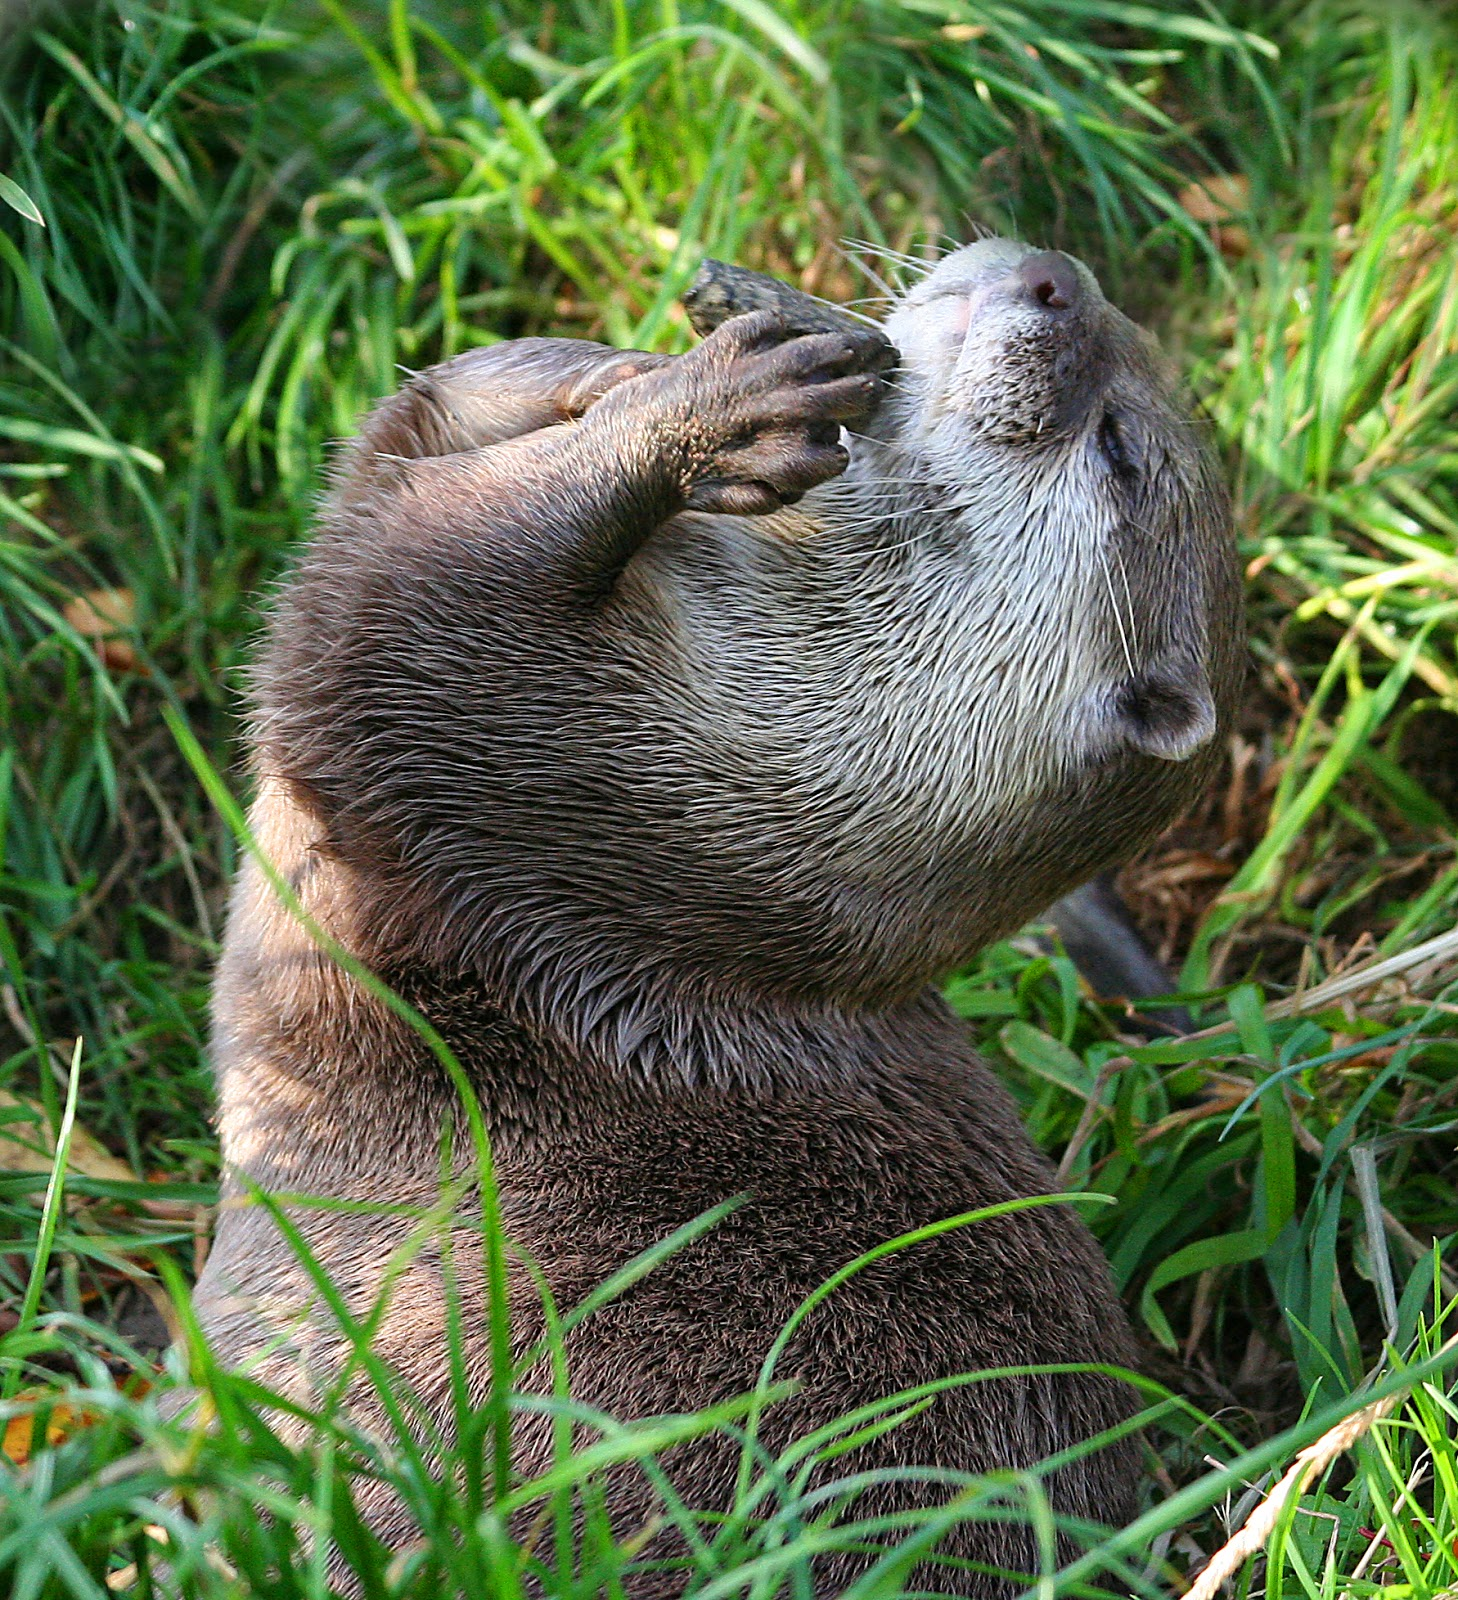 Small-clawed otters weigh around 5kg each and have been seen on offshore islands such as Pulau Tekong and Pulau Ubin in recent decades.